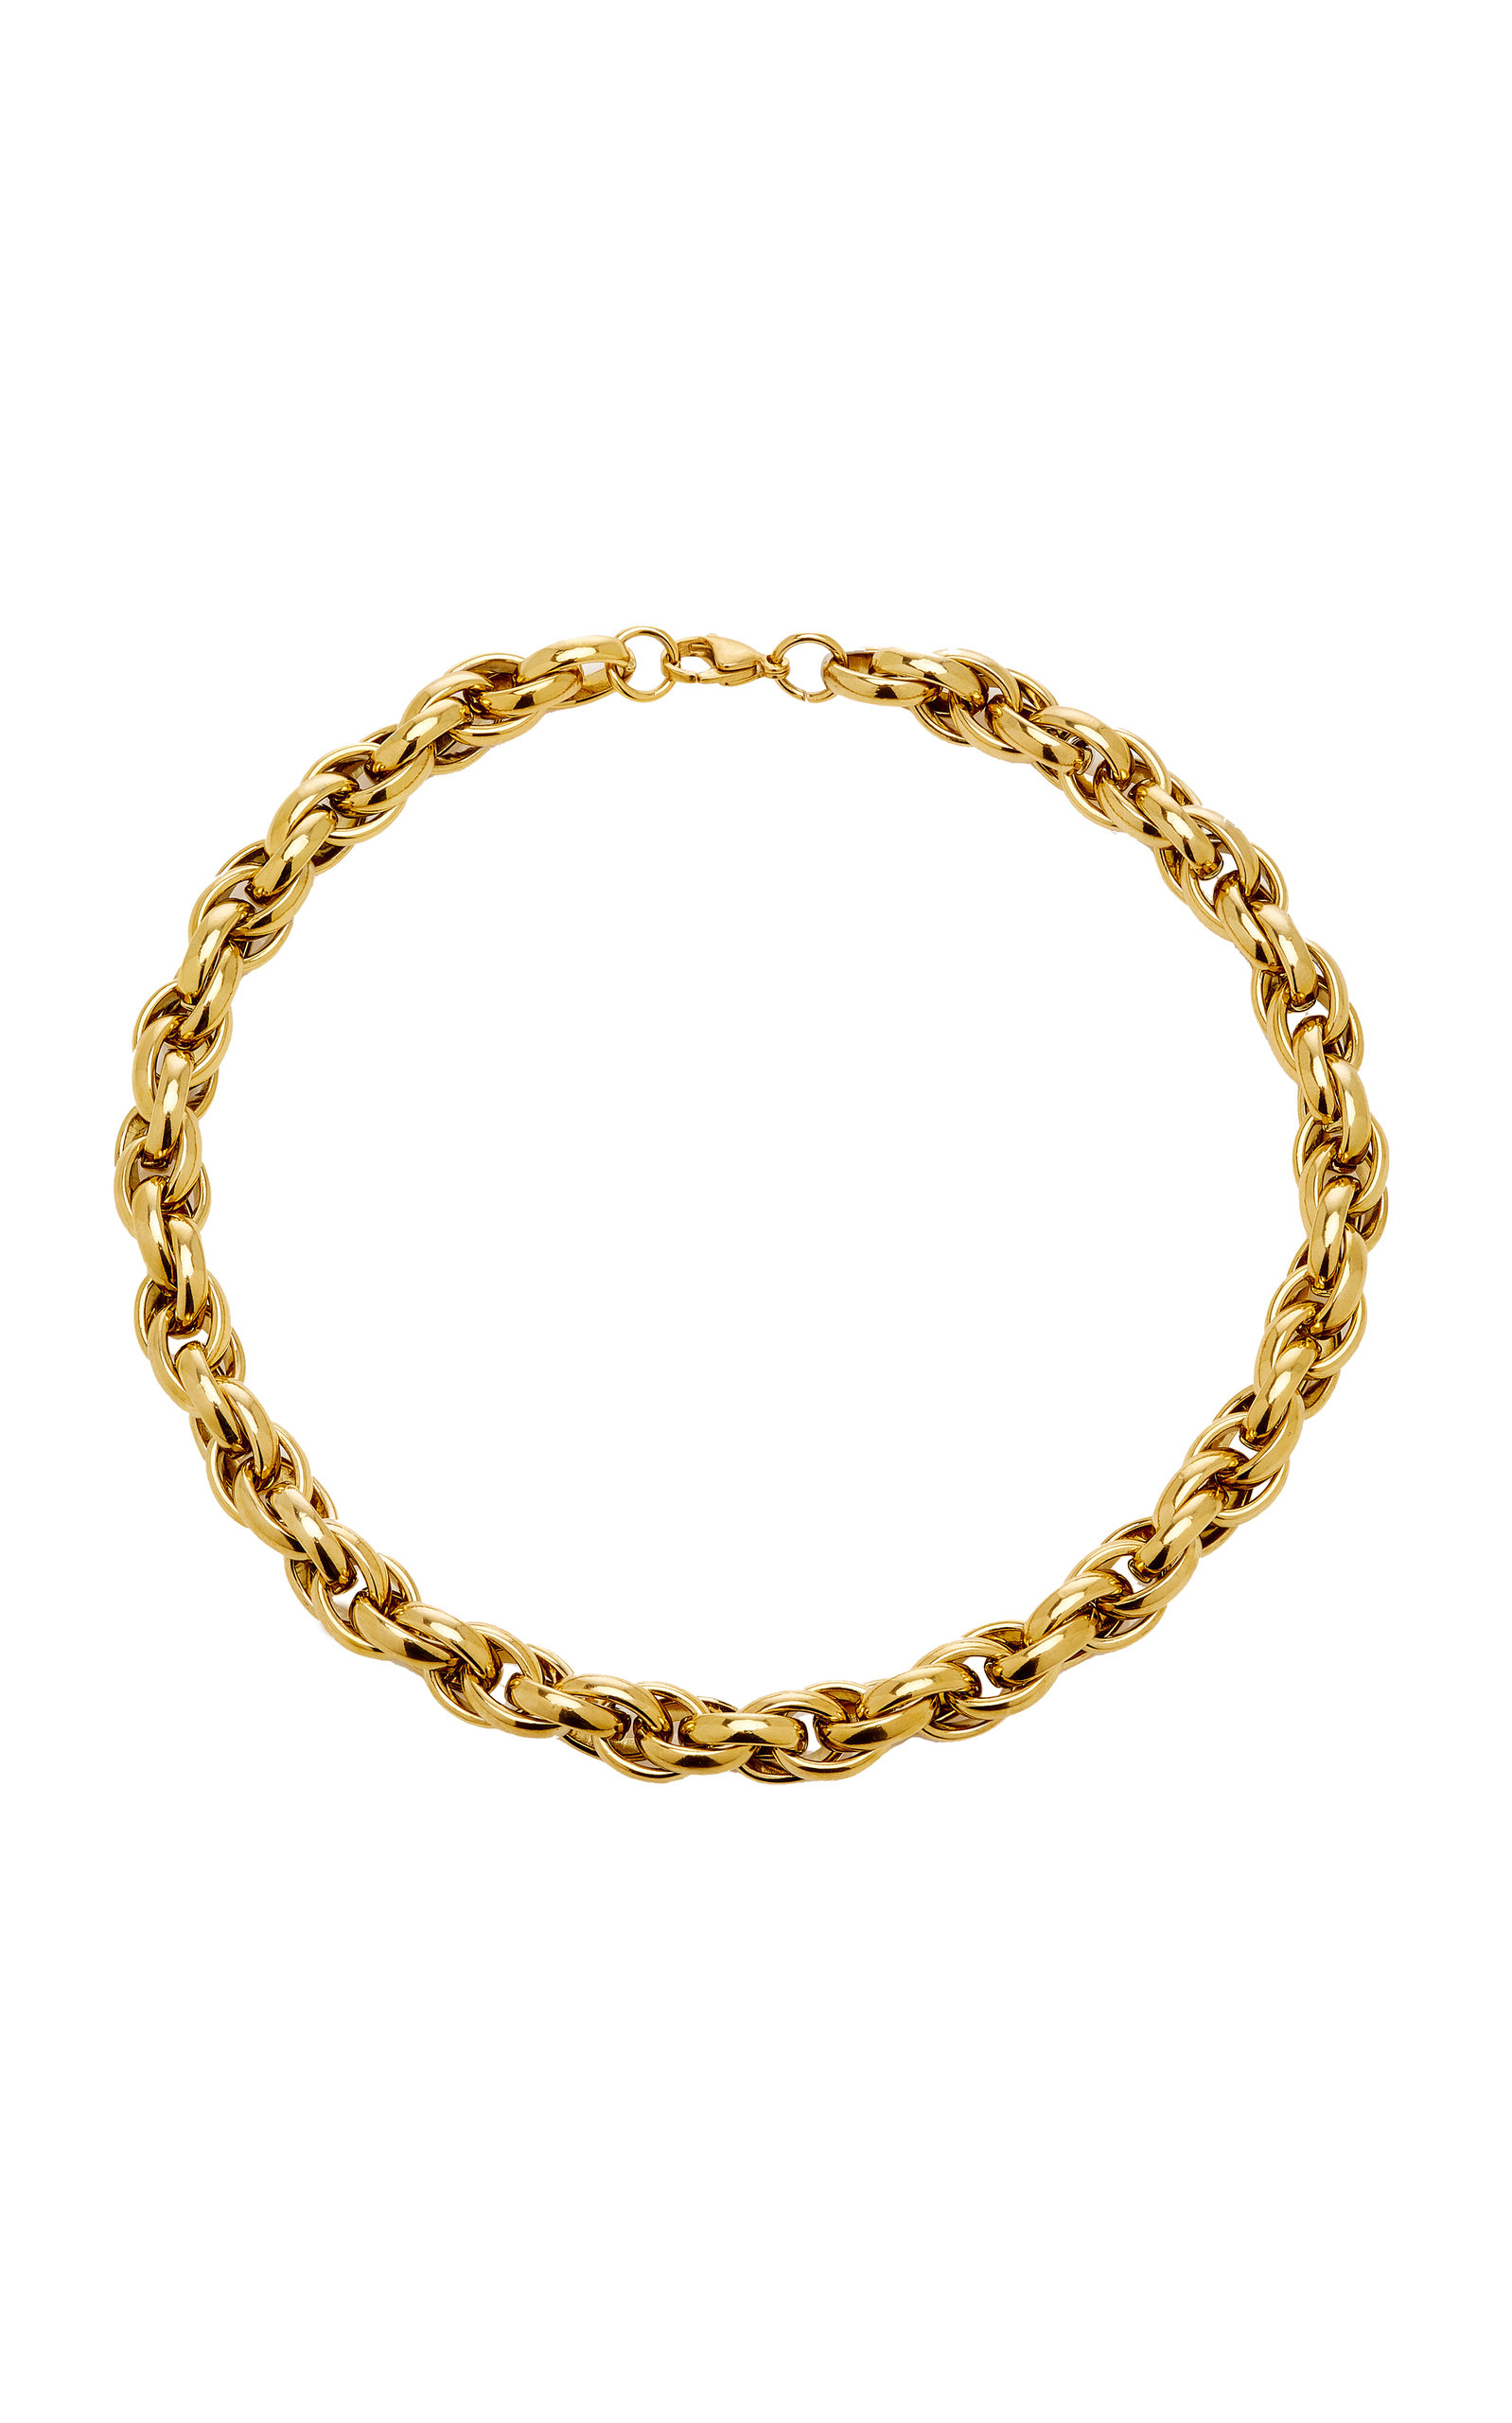 Women's Toscano Gold-Plated Chain Necklace